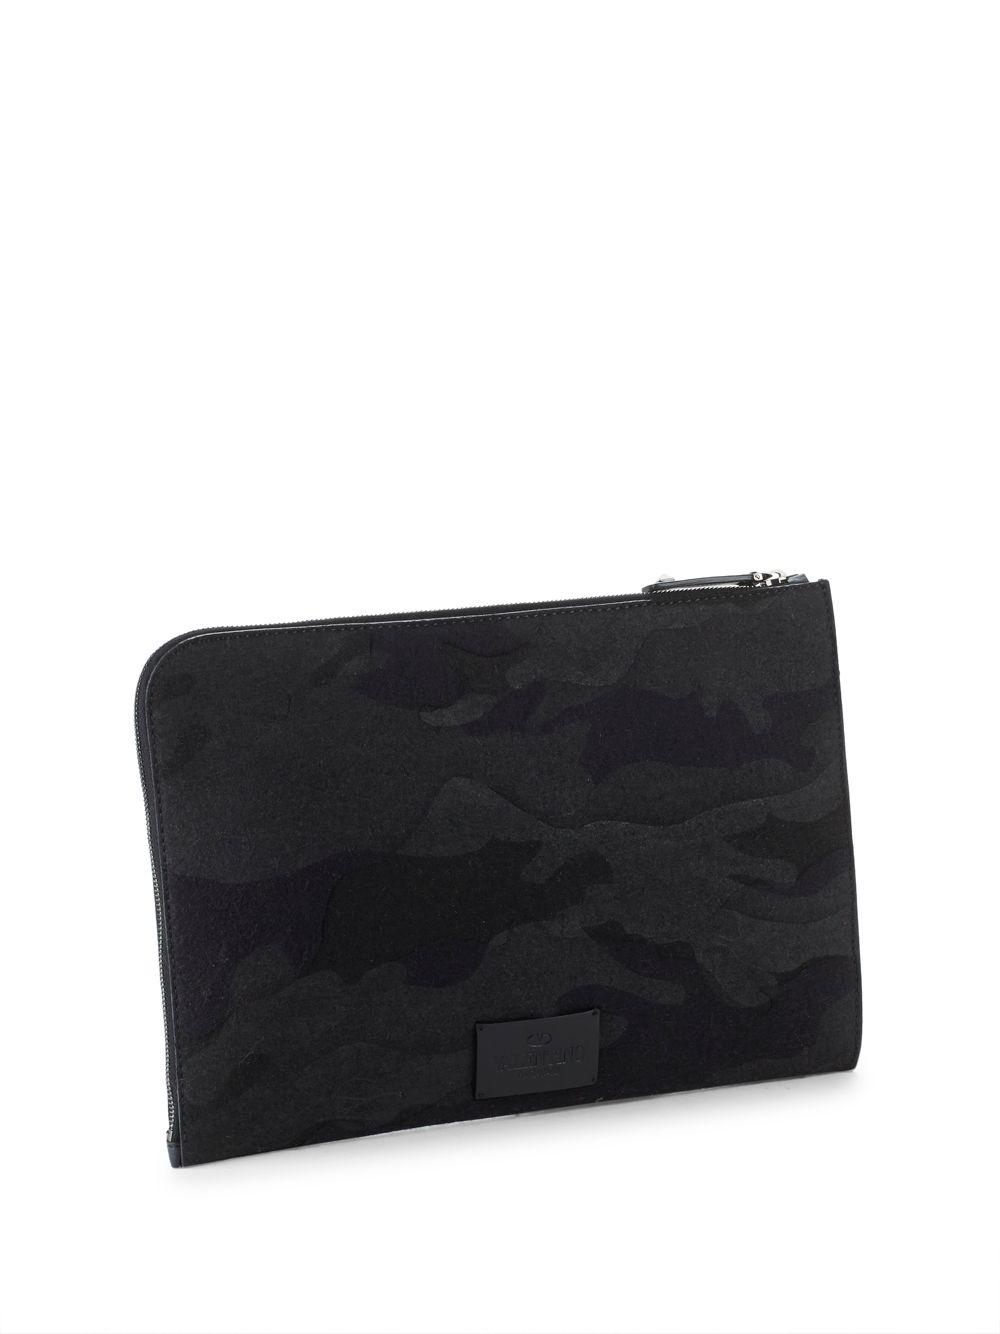 01e6e2dafb Lyst - Valentino Logo Patch Camouflage Document Case in Black for Men